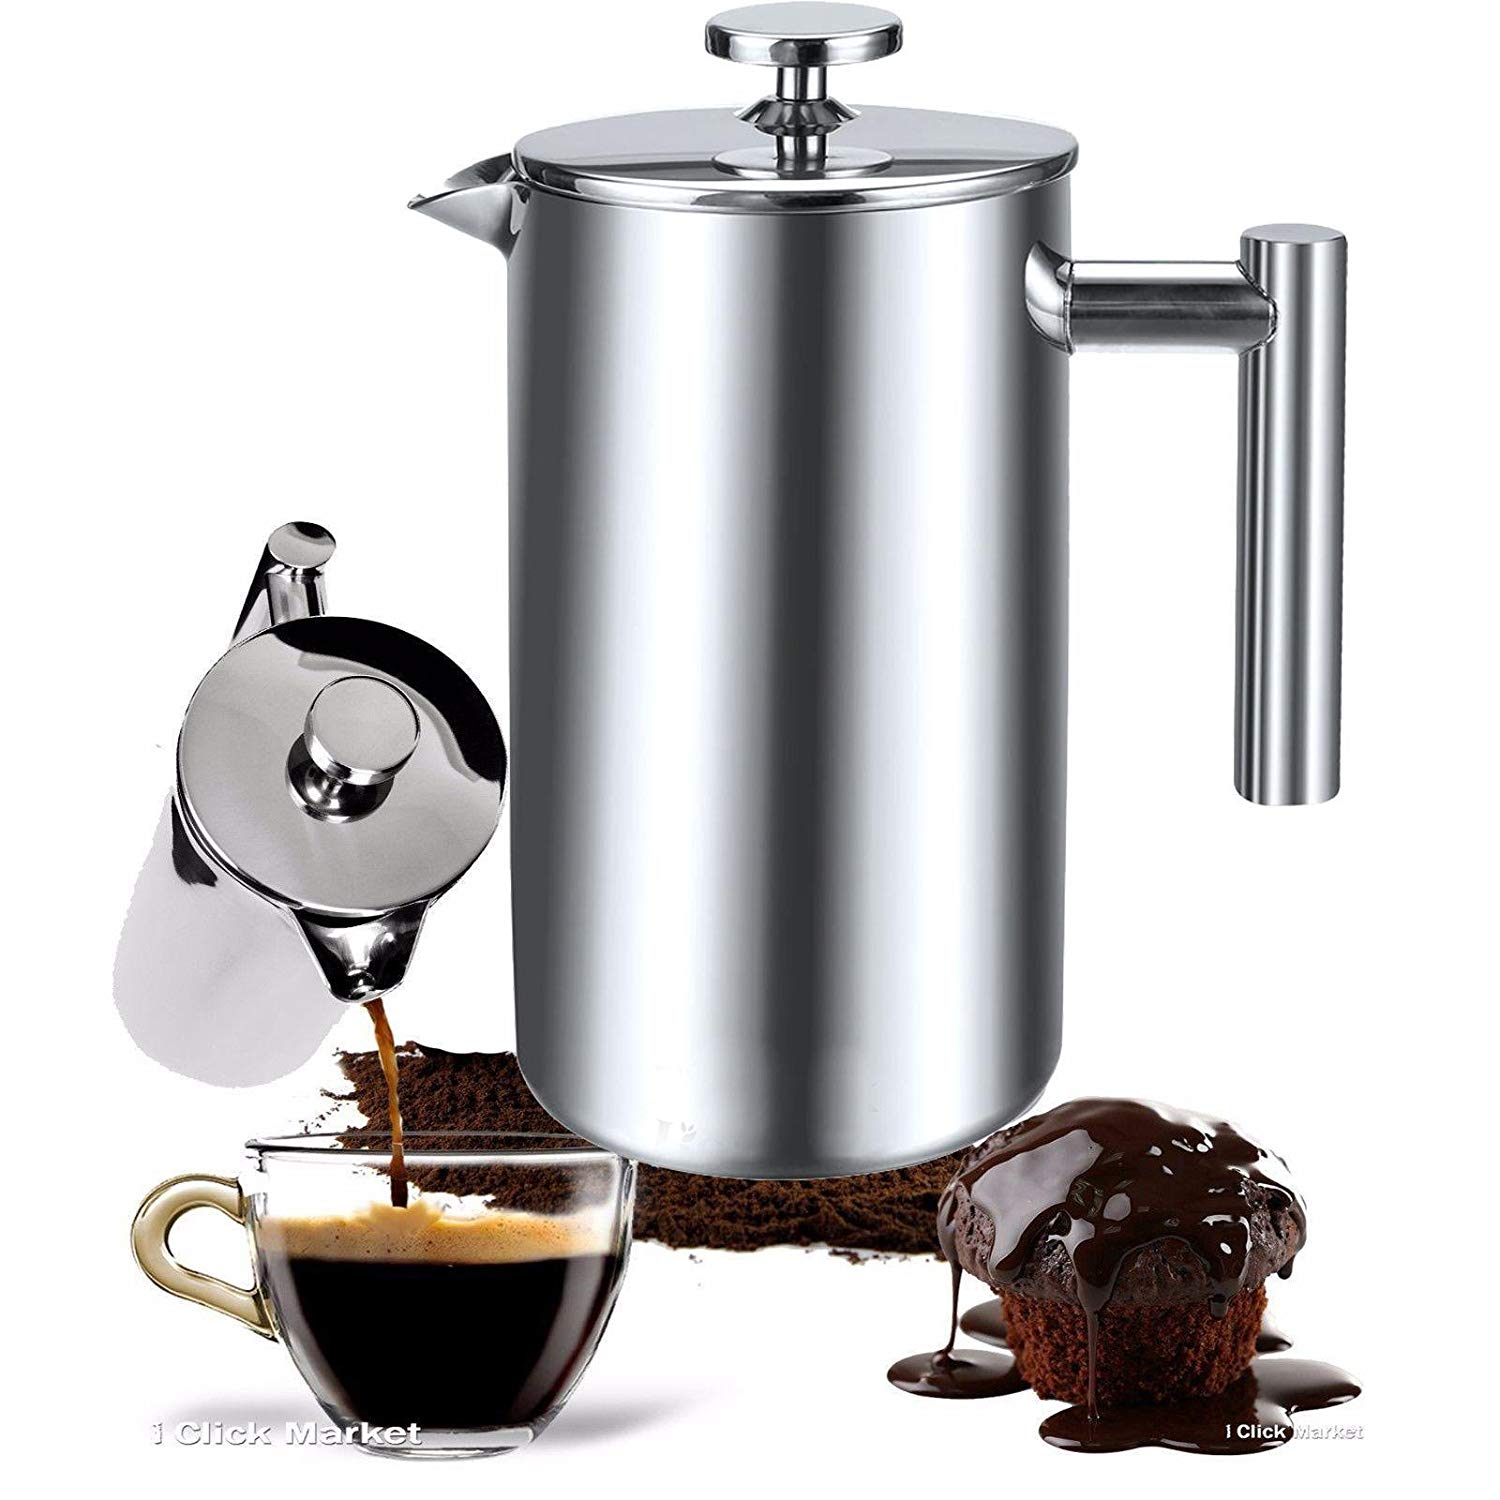 Keland French Press Coffee Maker, Double Wall Construction Coffee Maker Grinder Stainless Steel Coffee Press 8 Cup (34 Oz) (US Stock)